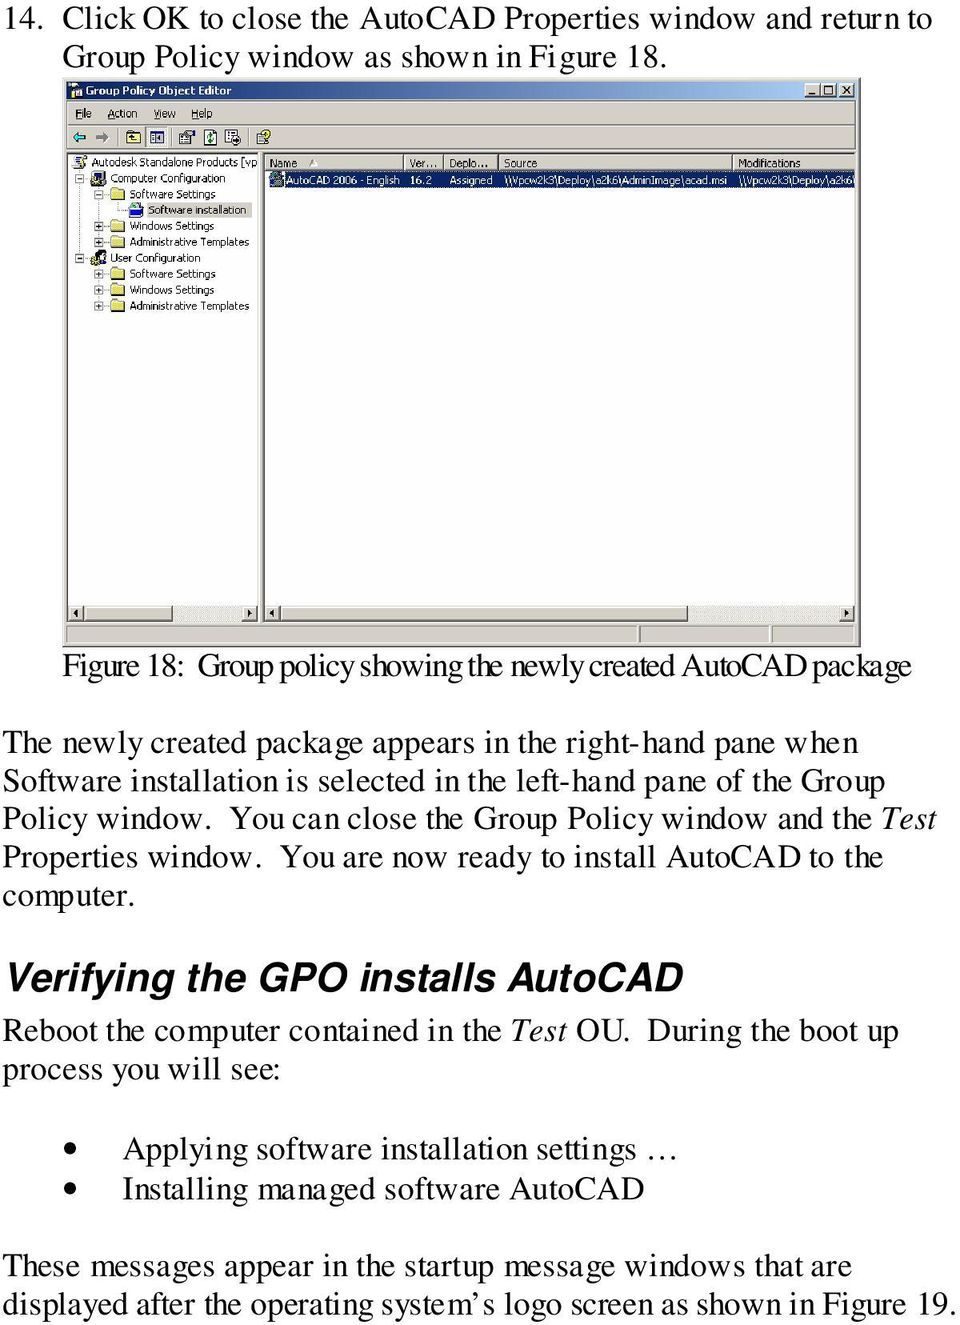 Group Policy window. You can close the Group Policy window and the Test Properties window. You are now ready to install AutoCAD to the computer.